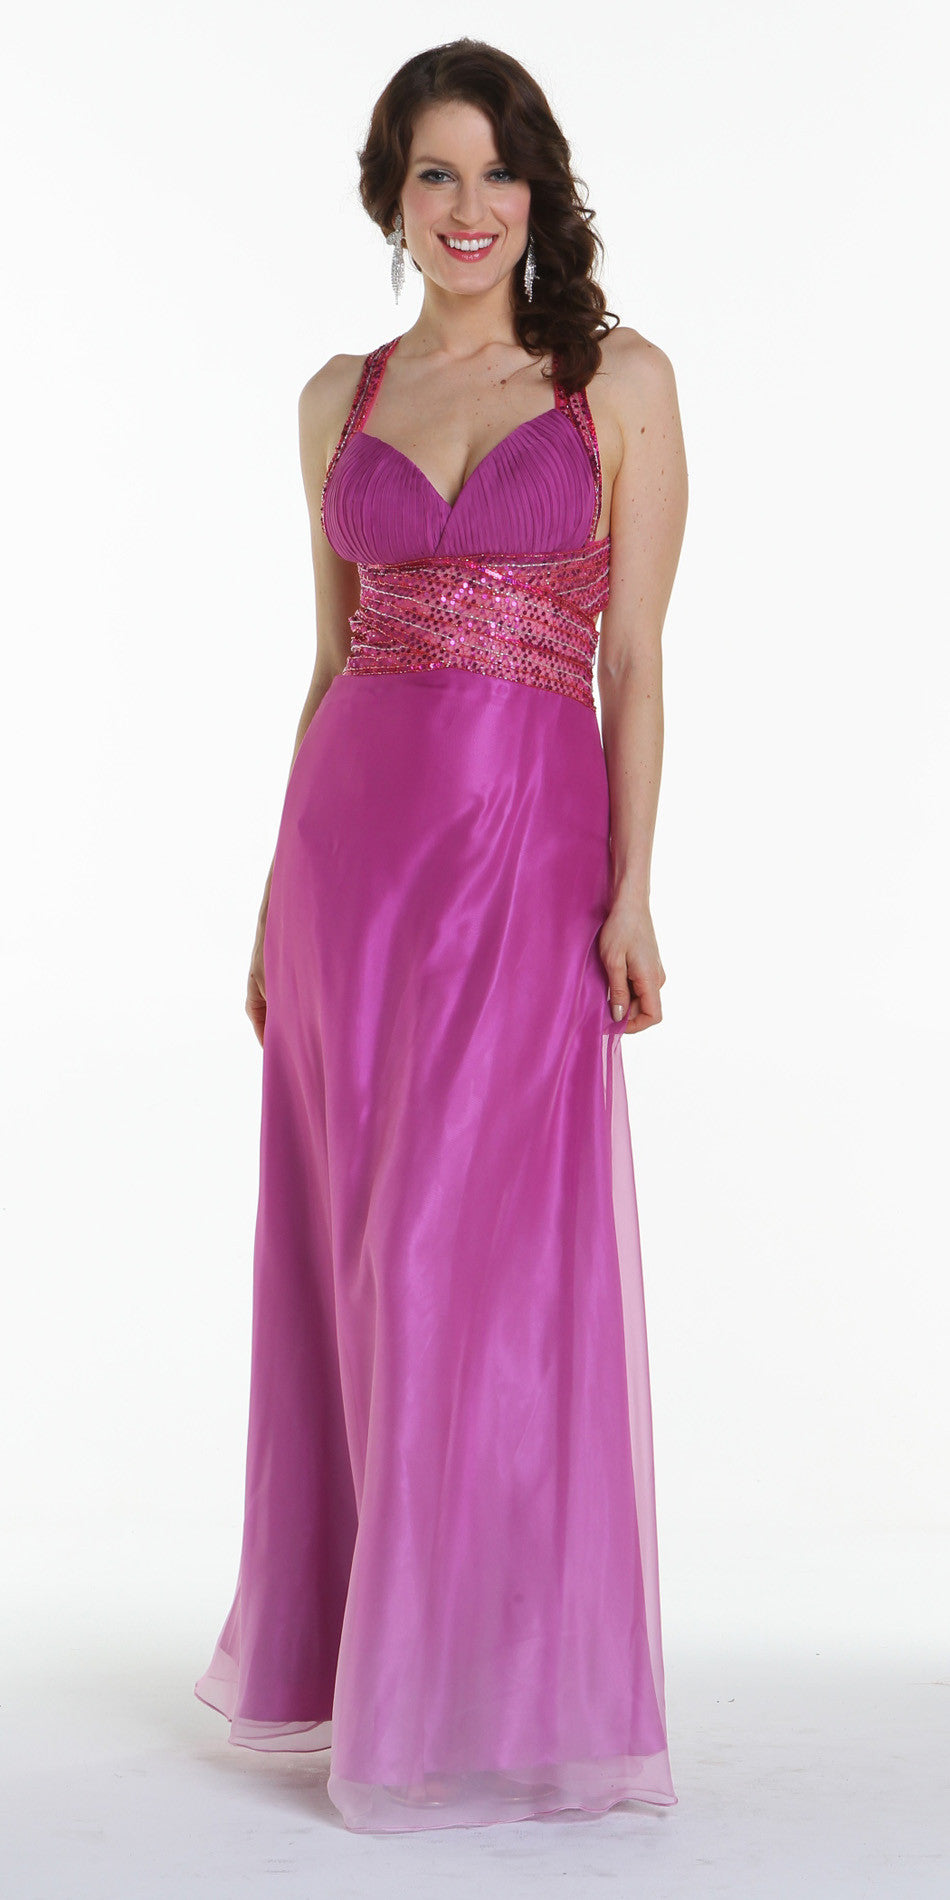 6494732406 ... ON SPECIAL LIMITED STOCK - Tie Dyed Orchid Chiffon Prom Dress Sequin  Waist Beaded Cross Back ...